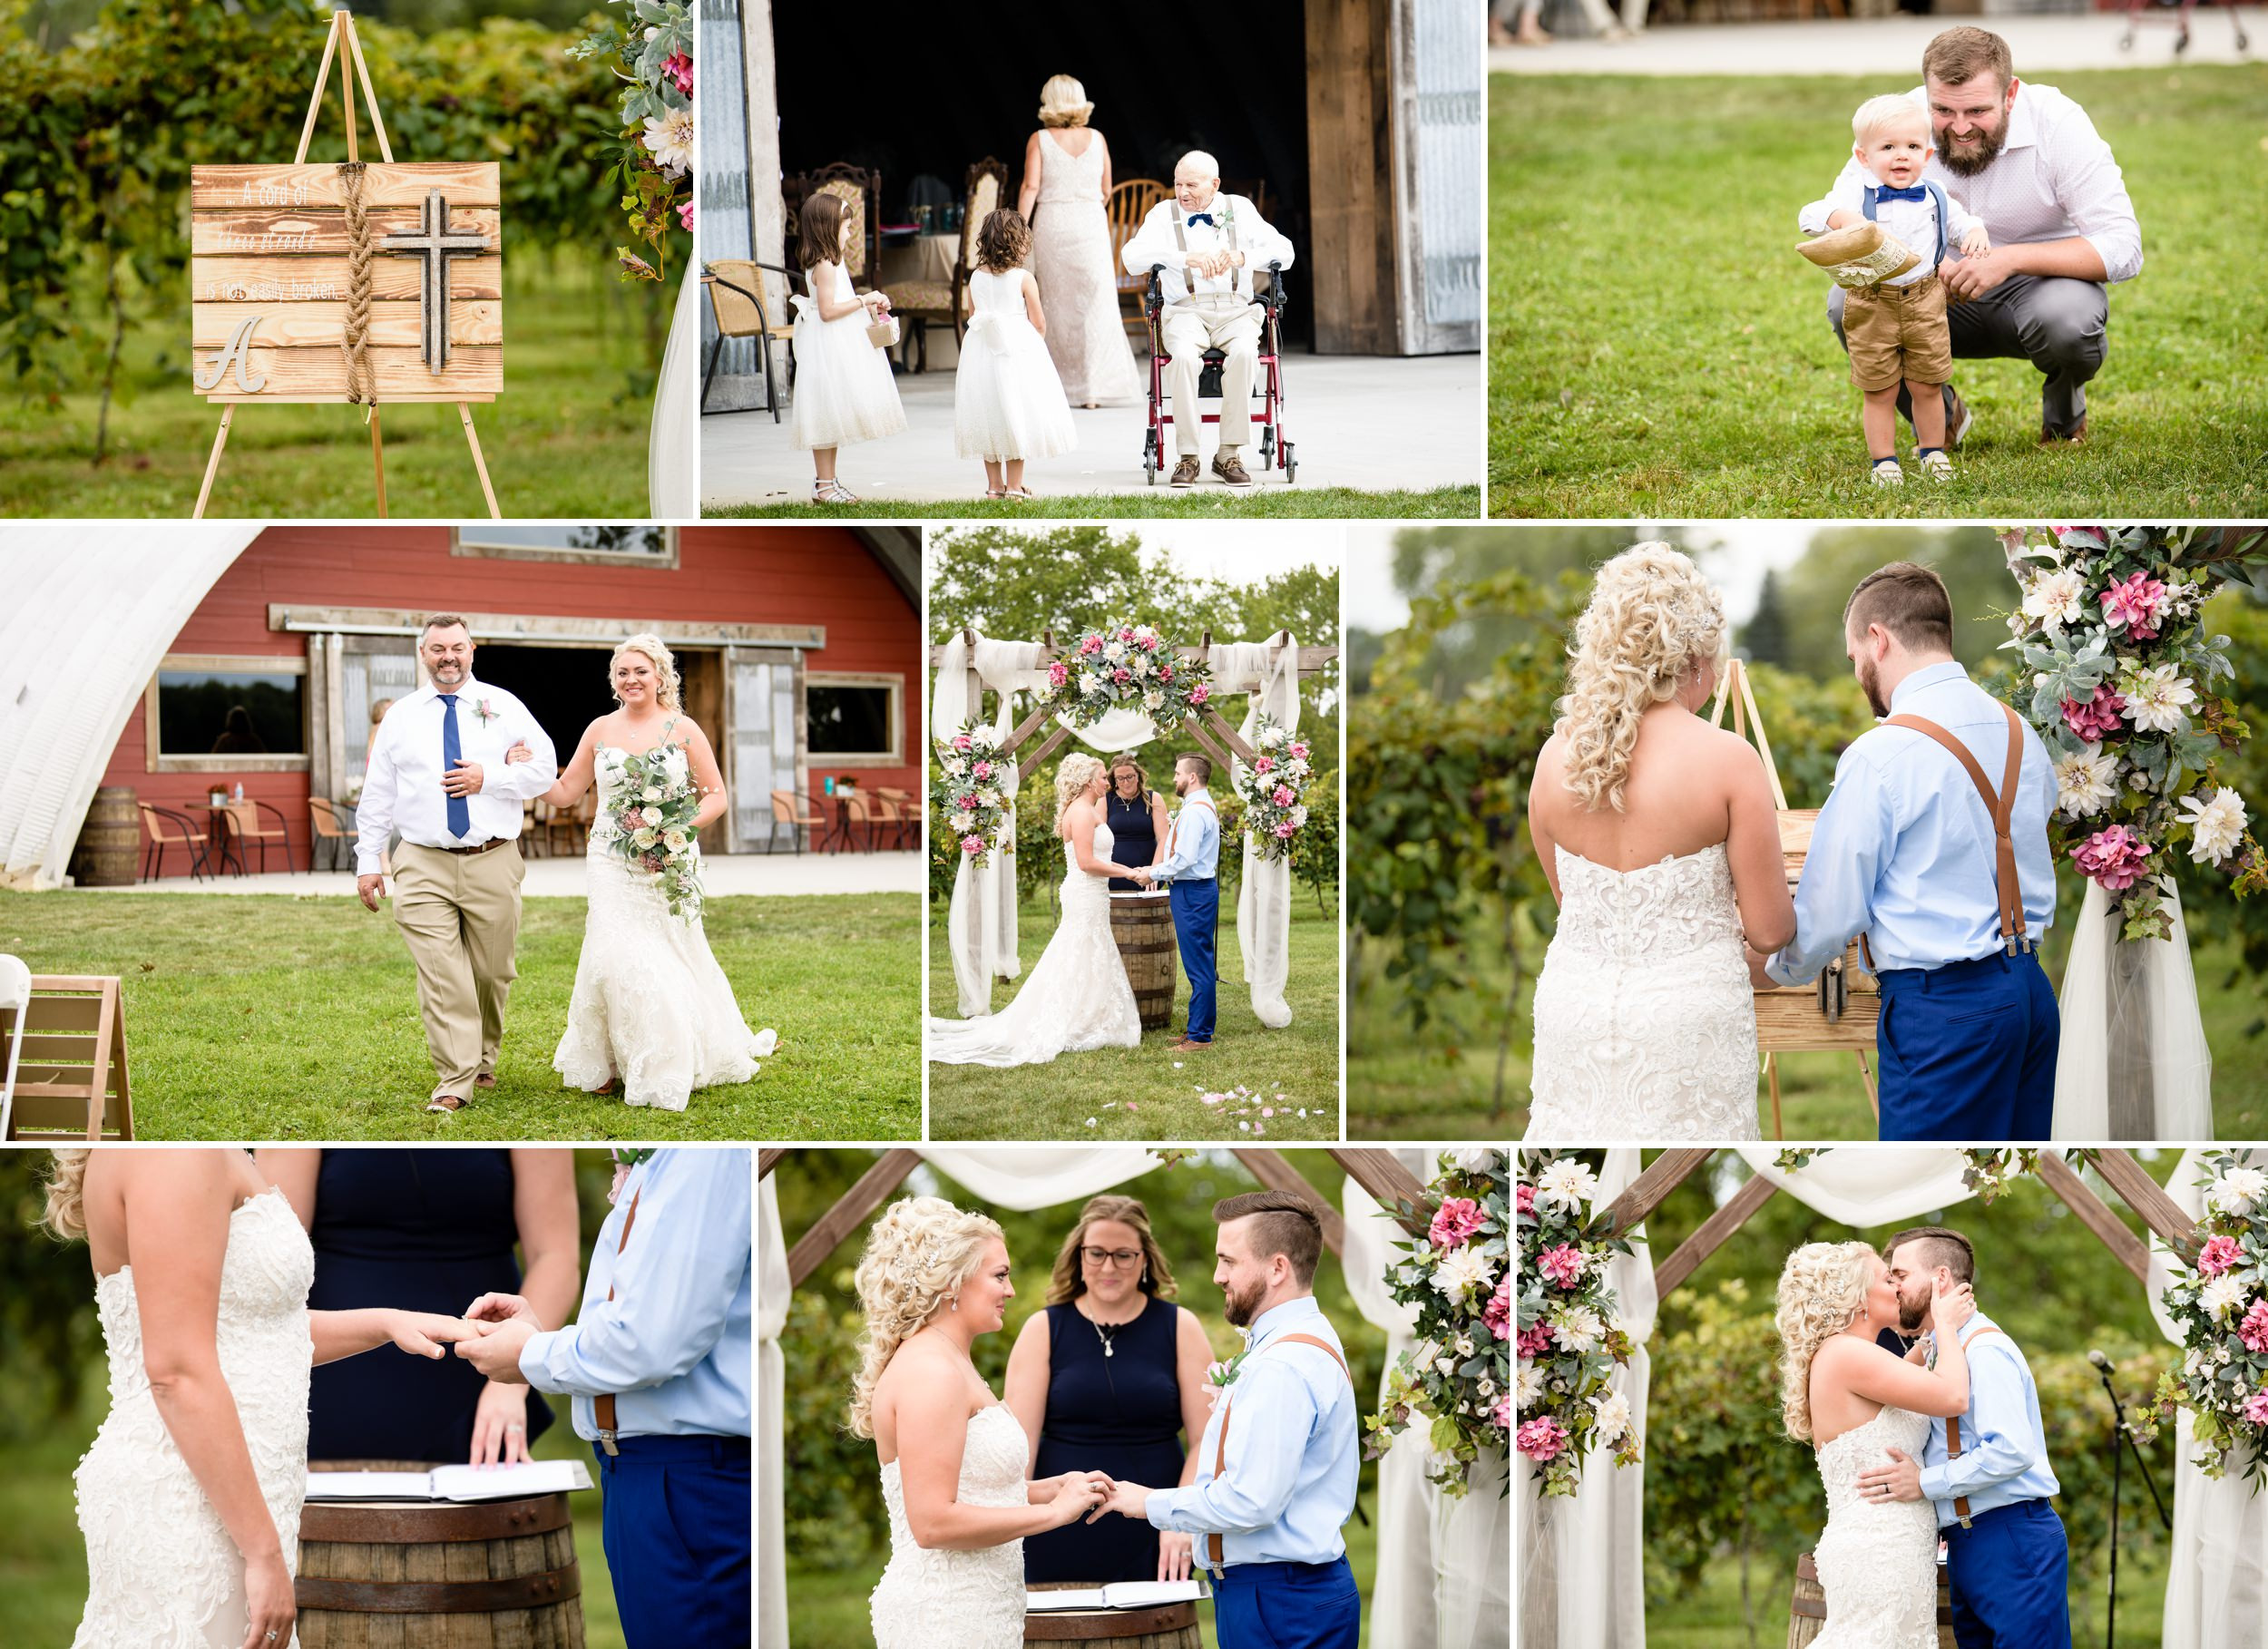 Outdoor wedding ceremony at Four Corners Winery in Valparaiso, Indiana.